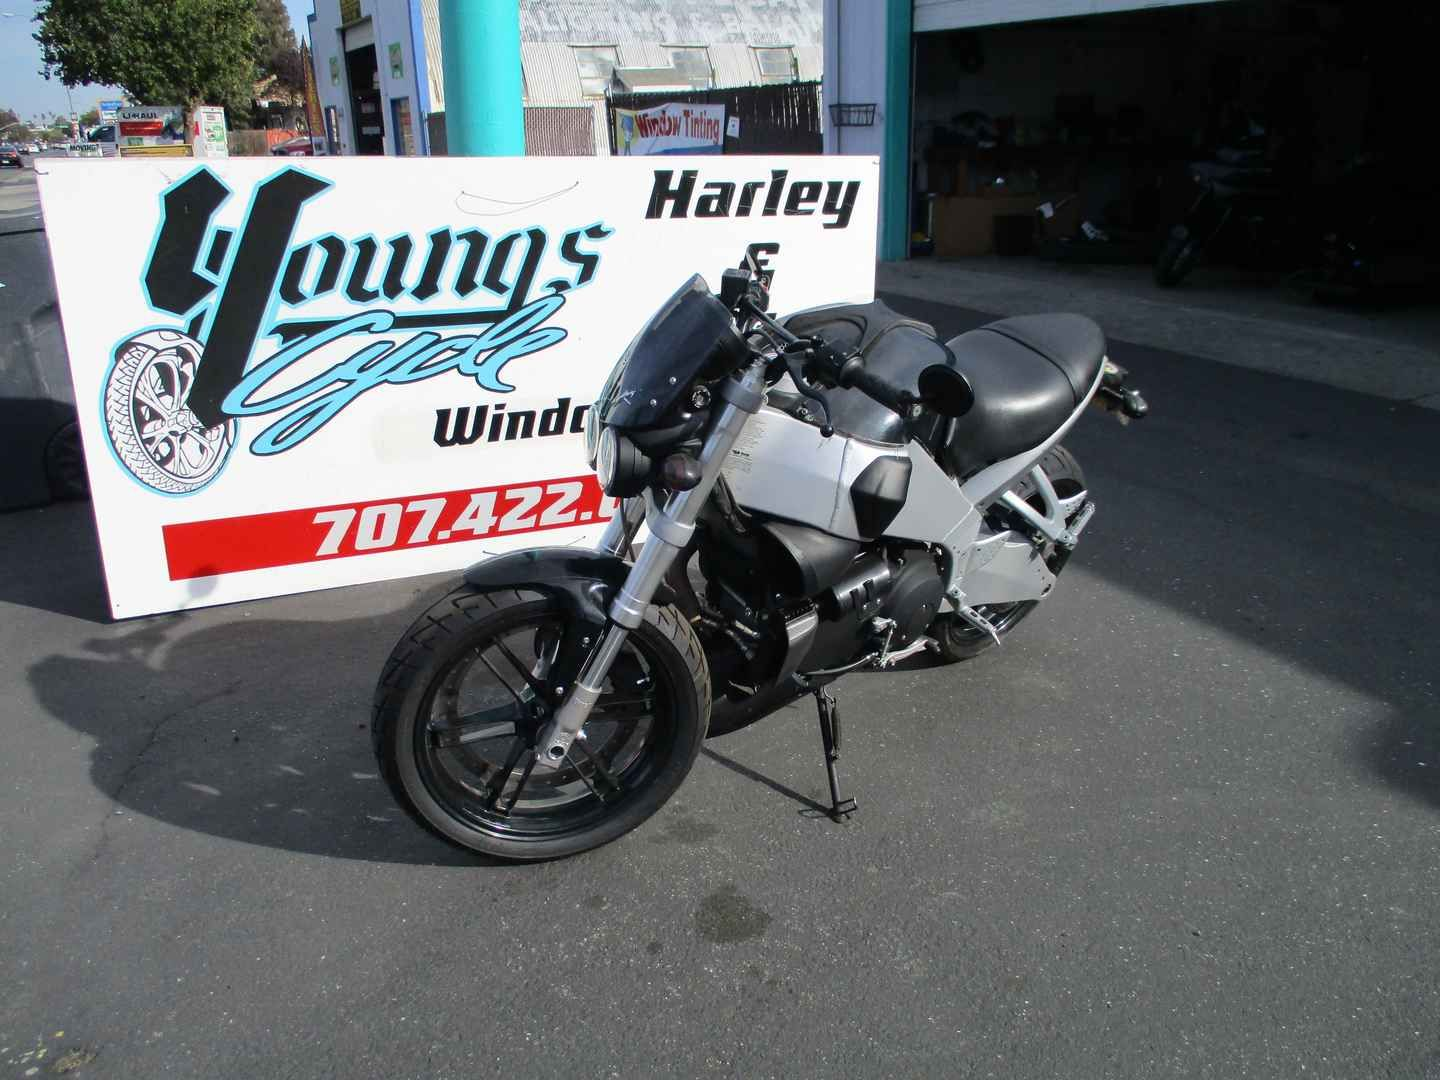 used 2006 harley davidson buell xb9sx motorcycles for sale in